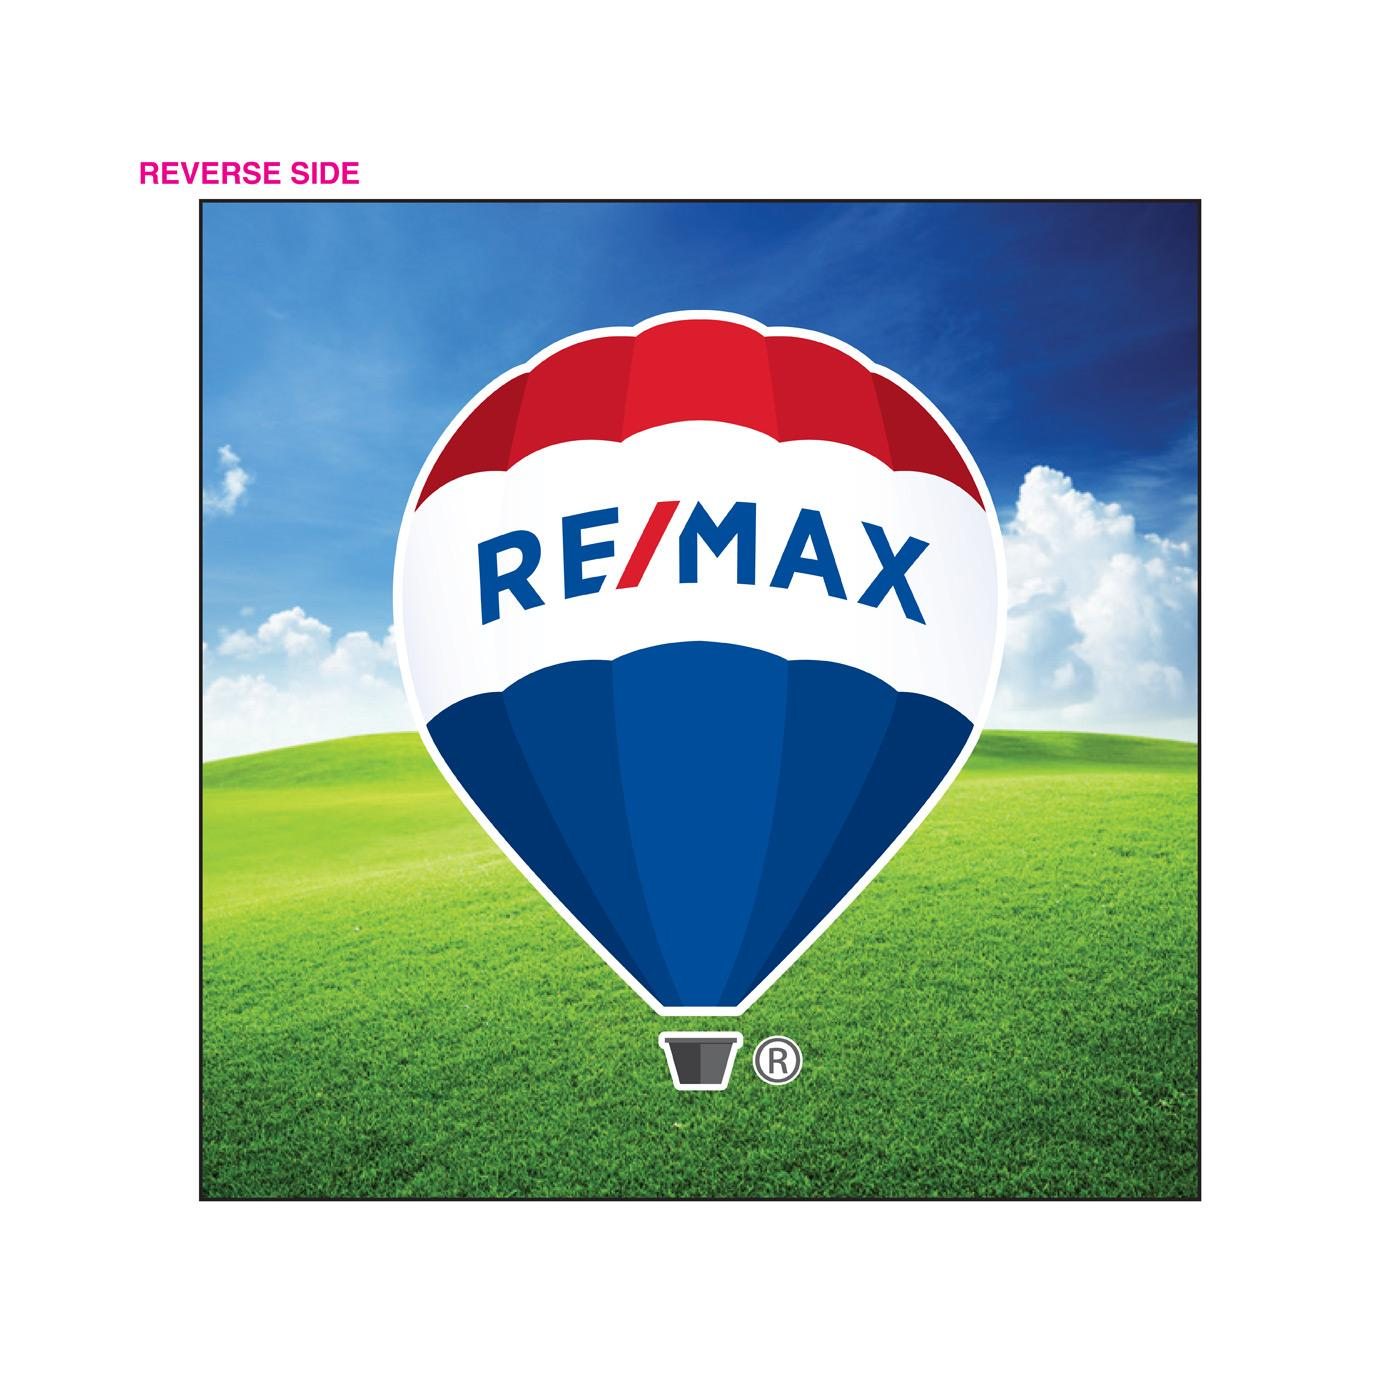 RE/MAX Square Business Card